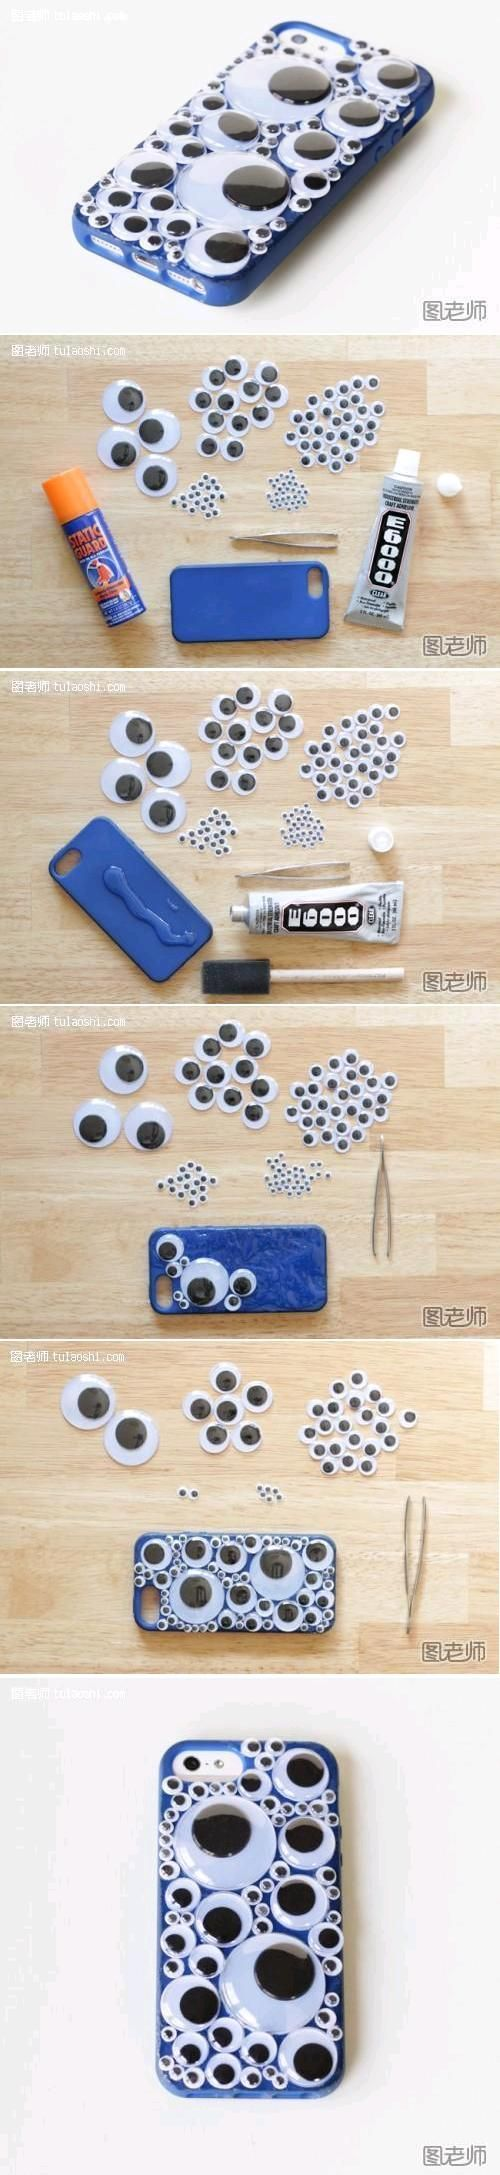 DIY Bubble Dream iPhone Case. How to add photo that you love to make personalized iPhone 6/ 6S case cover http://www.zazzle.com/cuteiphone6cases/iphone+6+cases?ps=128&qs=iphone%206%20cases&dp=252480905934073059&sr=250849706063379605&cg=196639667158713580&pg=1&rf=238478323816001889&tc=diyphonecaseideas